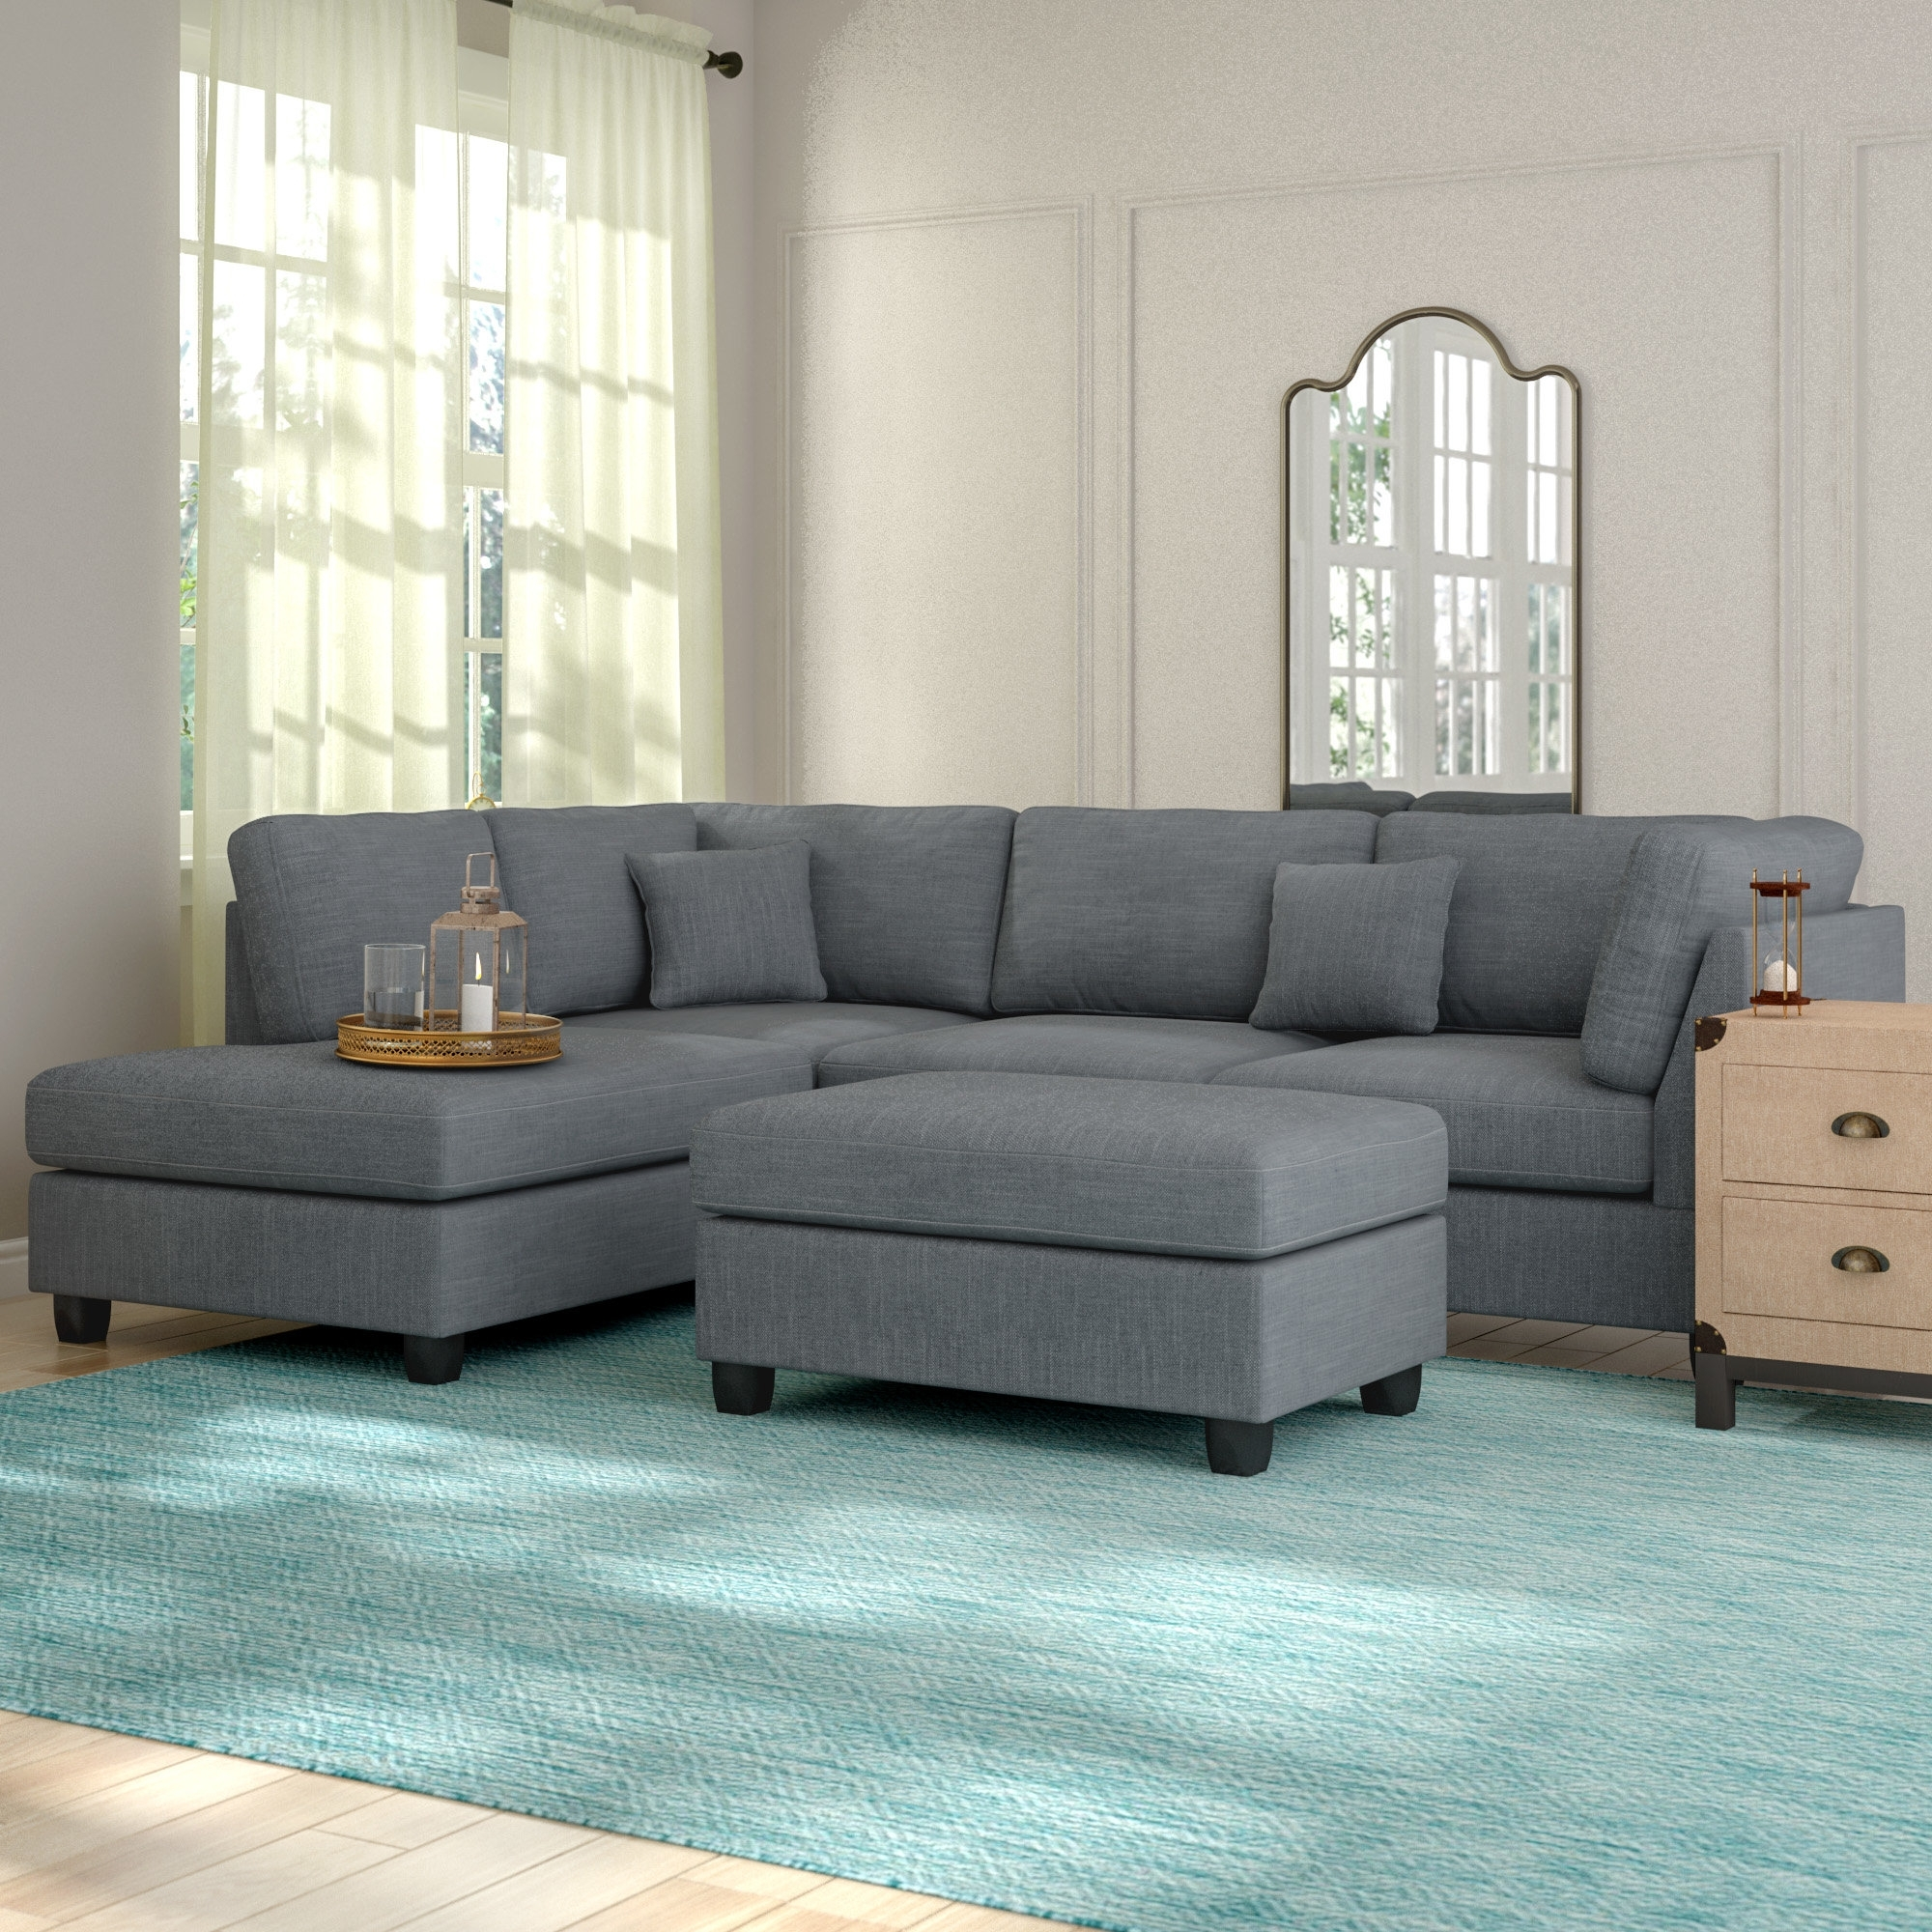 Grey Sectionals You'll Love | Wayfair for Norfolk Grey 6 Piece Sectionals With Raf Chaise (Image 12 of 30)